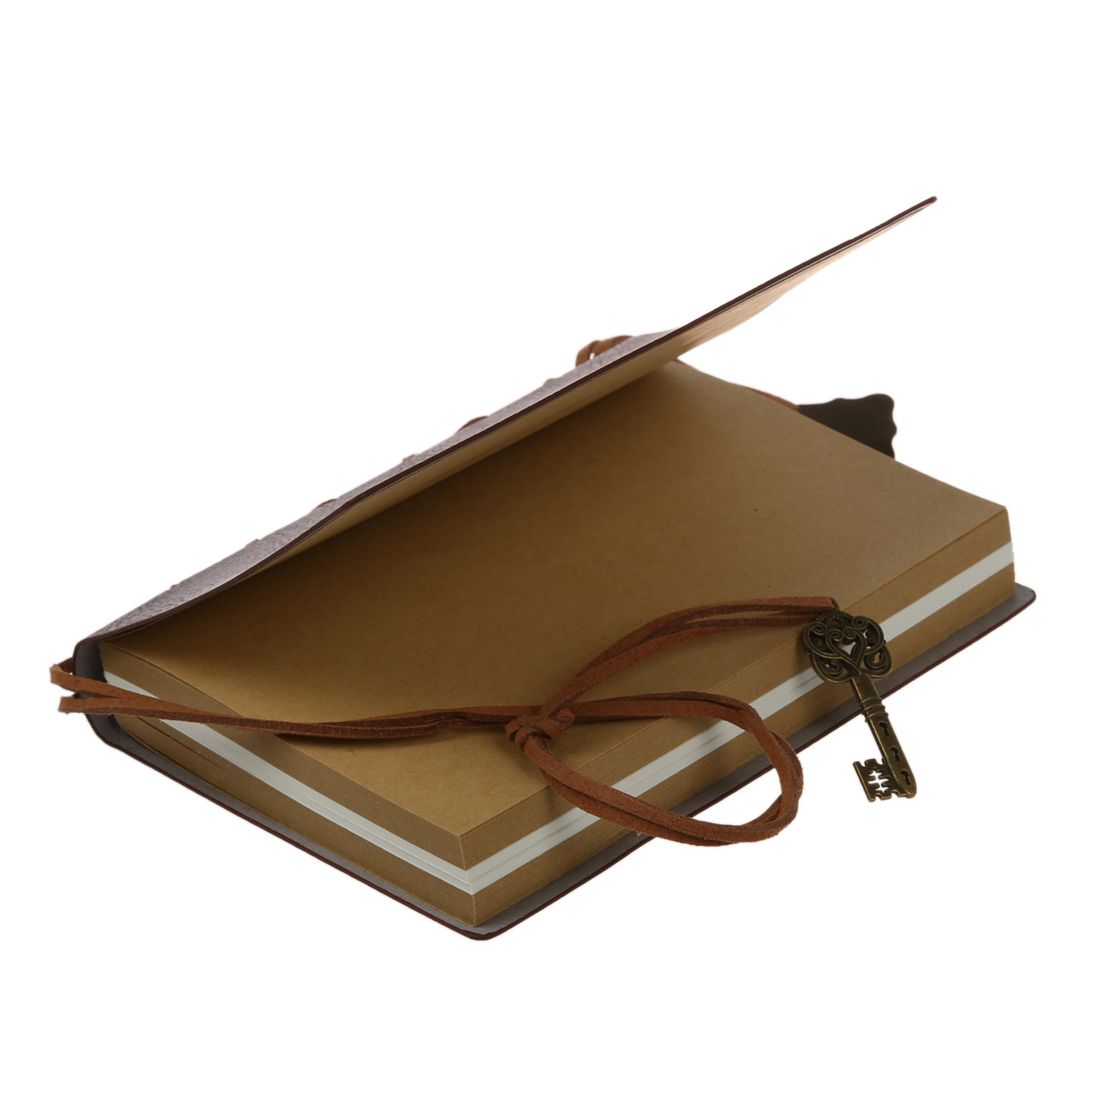 PPYY NEW -Delicate Cool Classic Vintage Leather Bound Blank Pages Journal Diary Notebook ppyy new tenfon g 3125 0 5mm pen pink